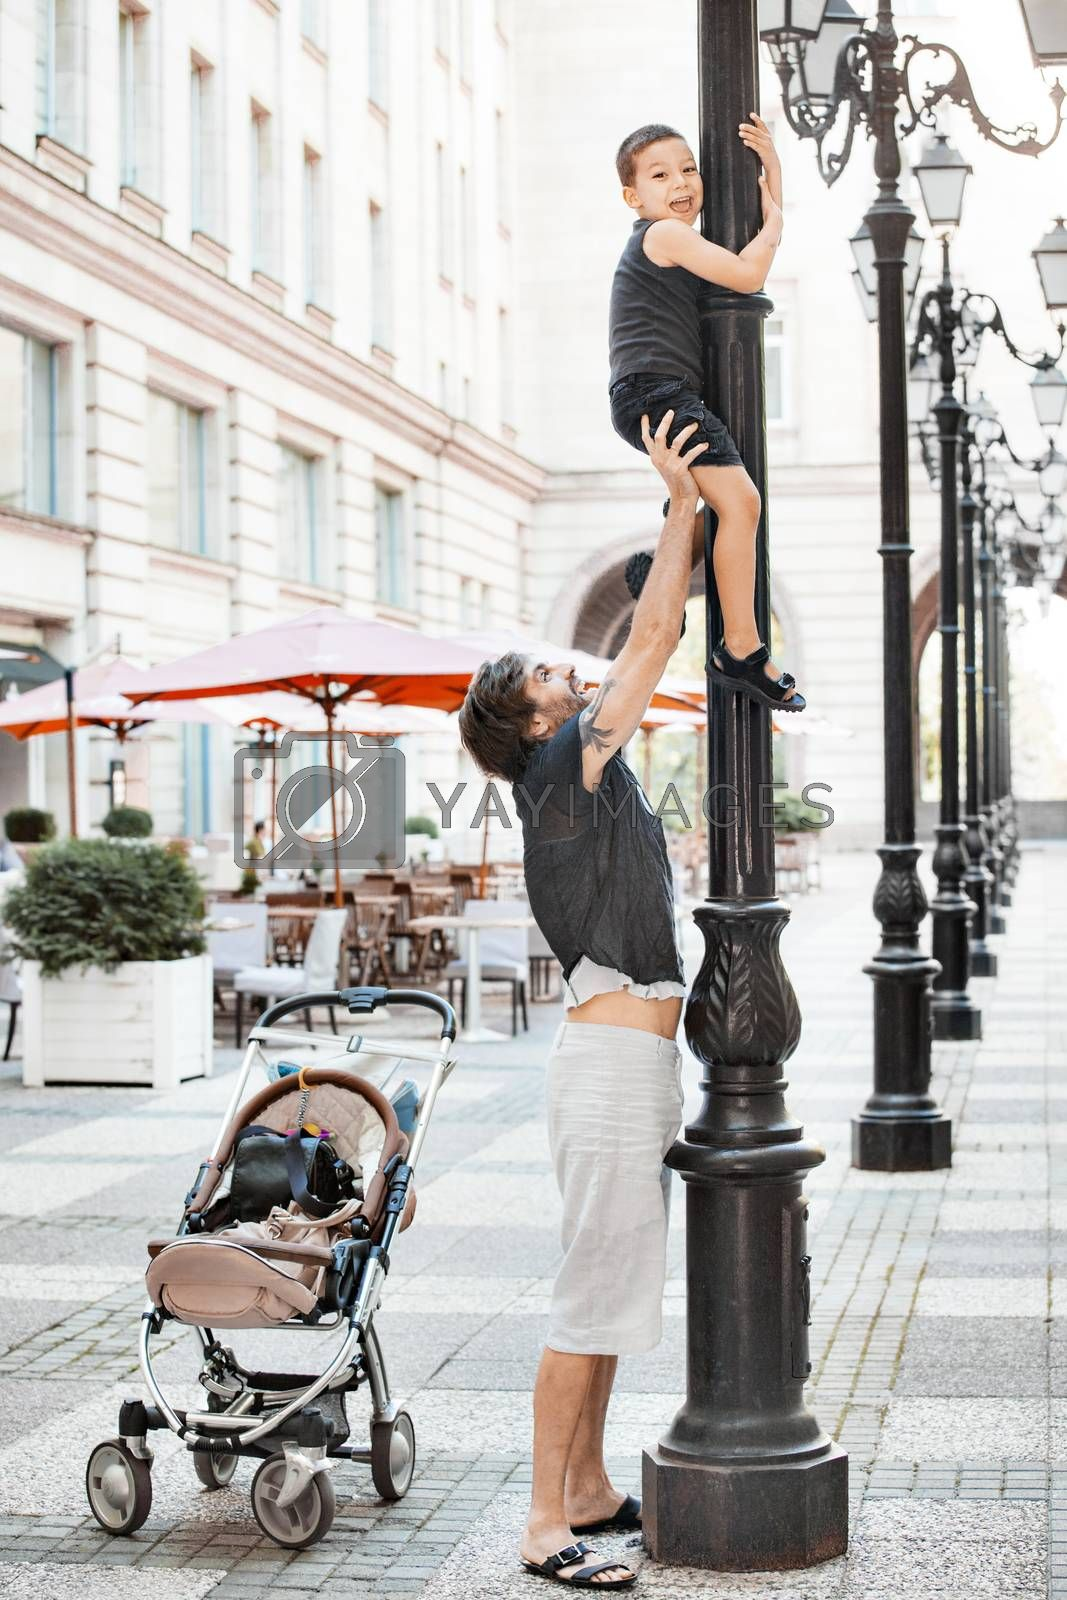 A handsome father is holding up his young boy on a street pillar.